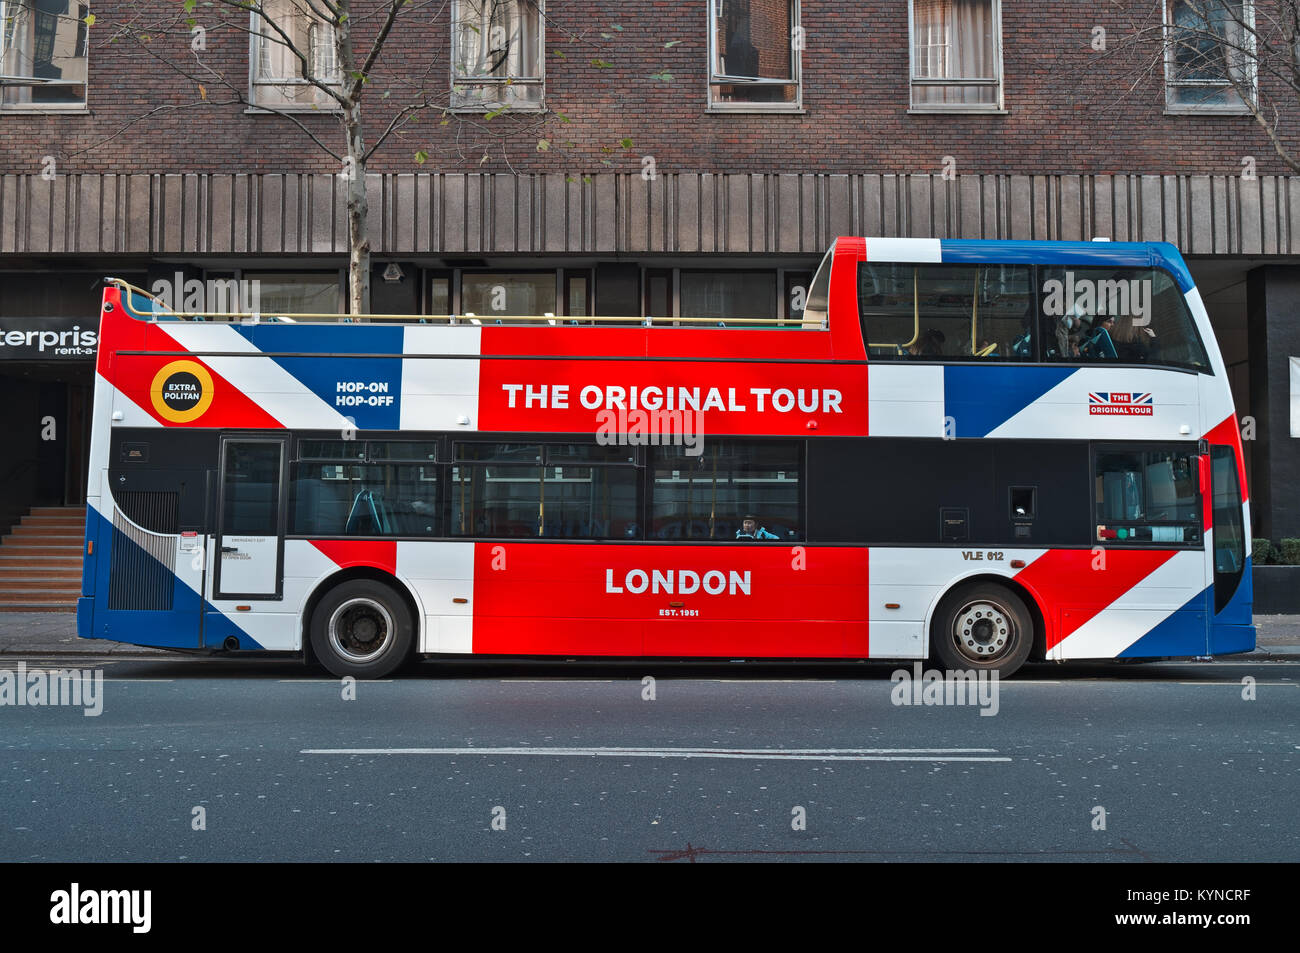 The Original Tour London Map.The Original Tour Bus London Dealsweekly Co